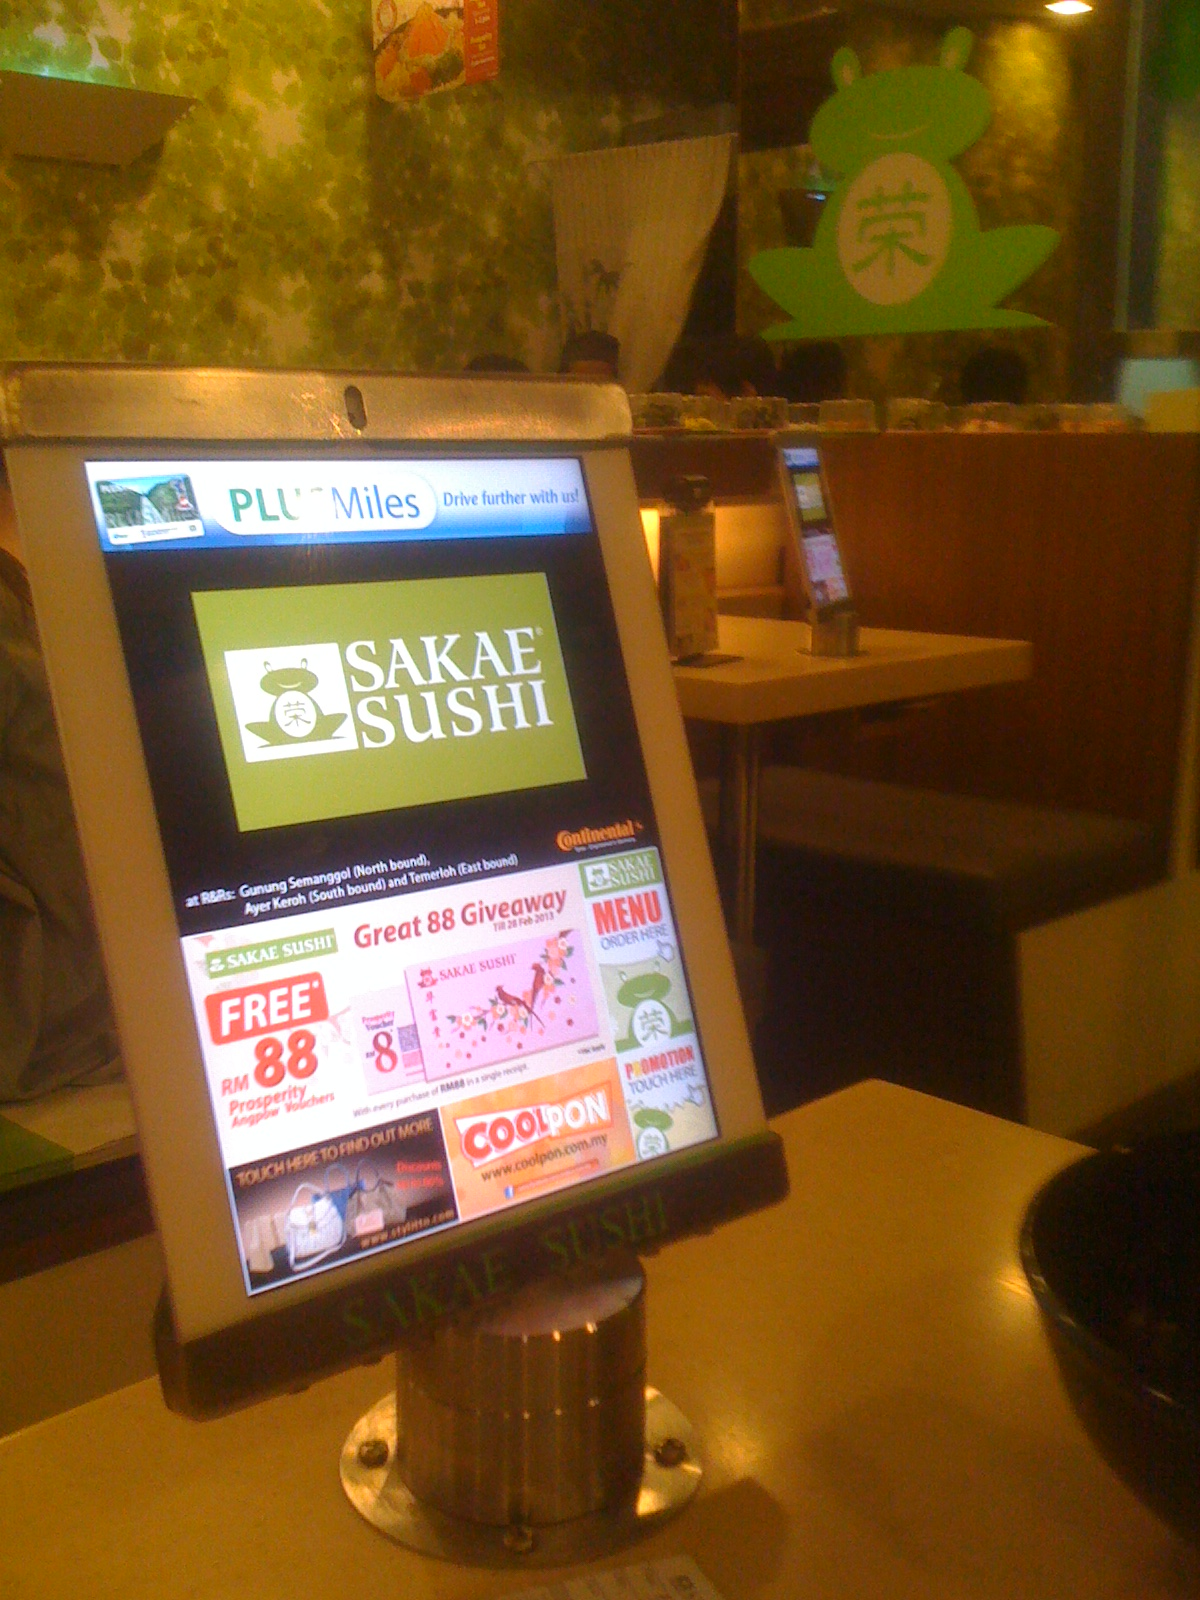 Mission Accomplished : Sakae Sushi --- We Serve Only What We Eat